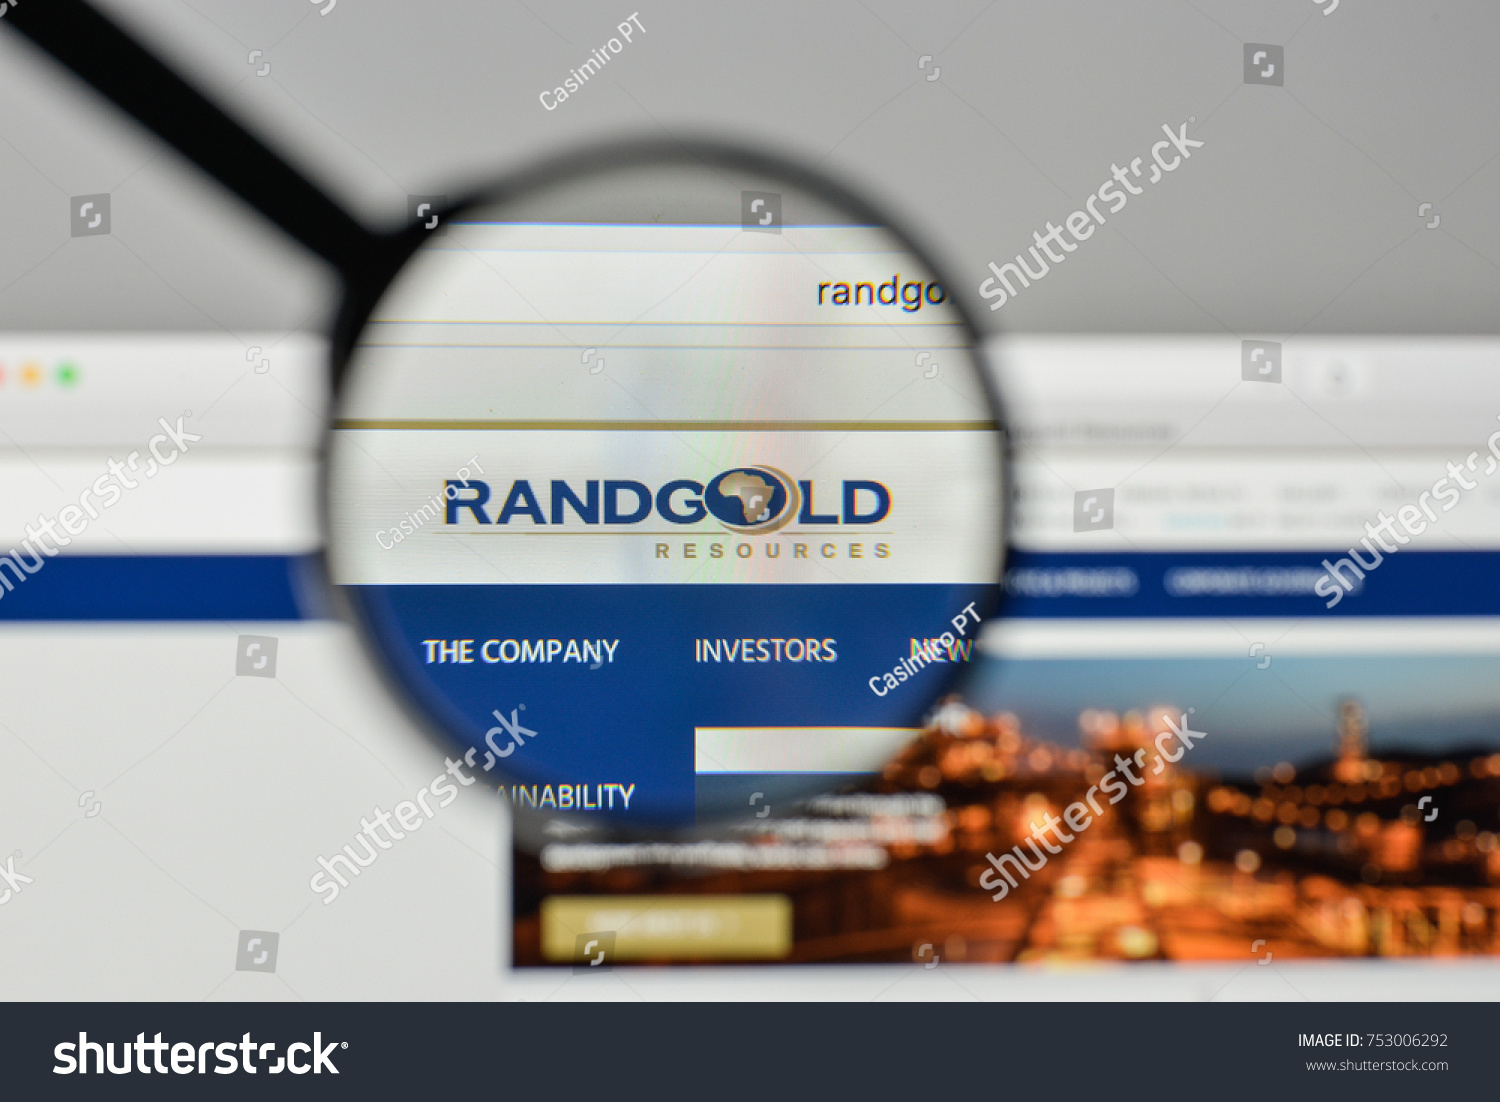 Milan italy november 1 2017 randgold stock photo 753006292 milan italy november 1 2017 randgold resources logo on the website homepage buycottarizona